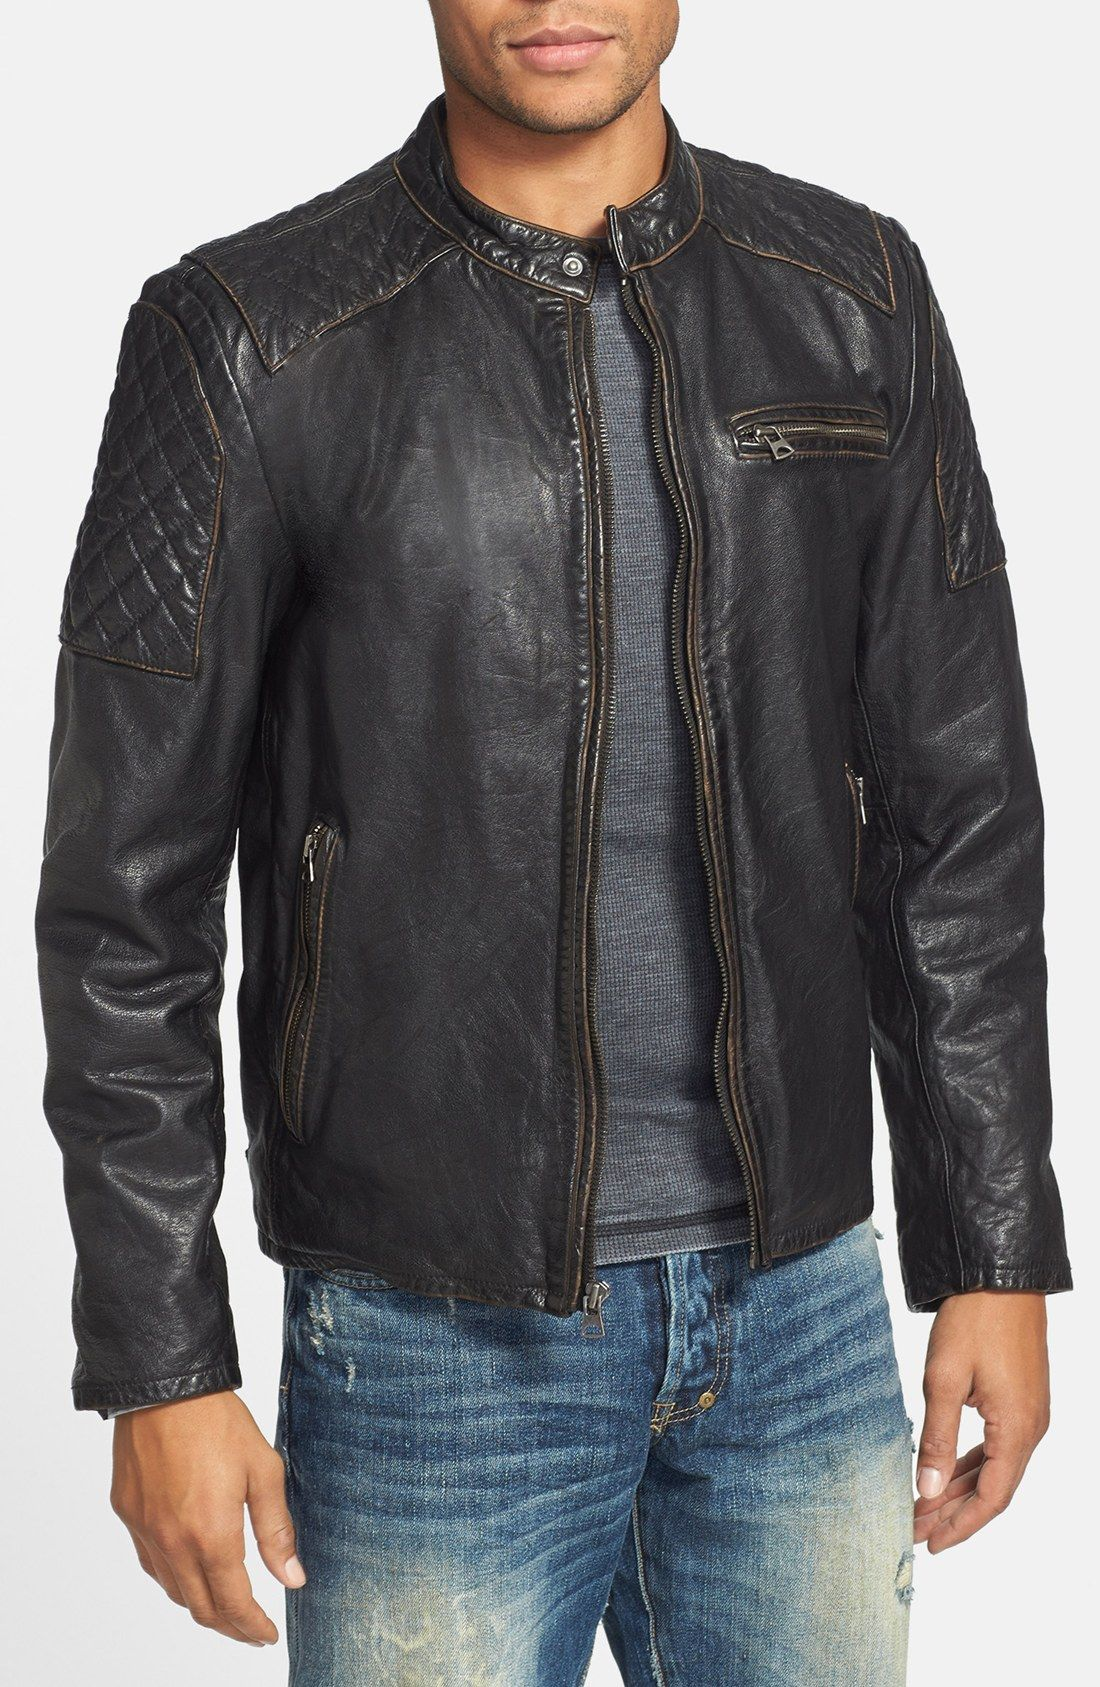 Leather His Pinterest A Style Mode Is Just Jacket Black 5CXxXqw4